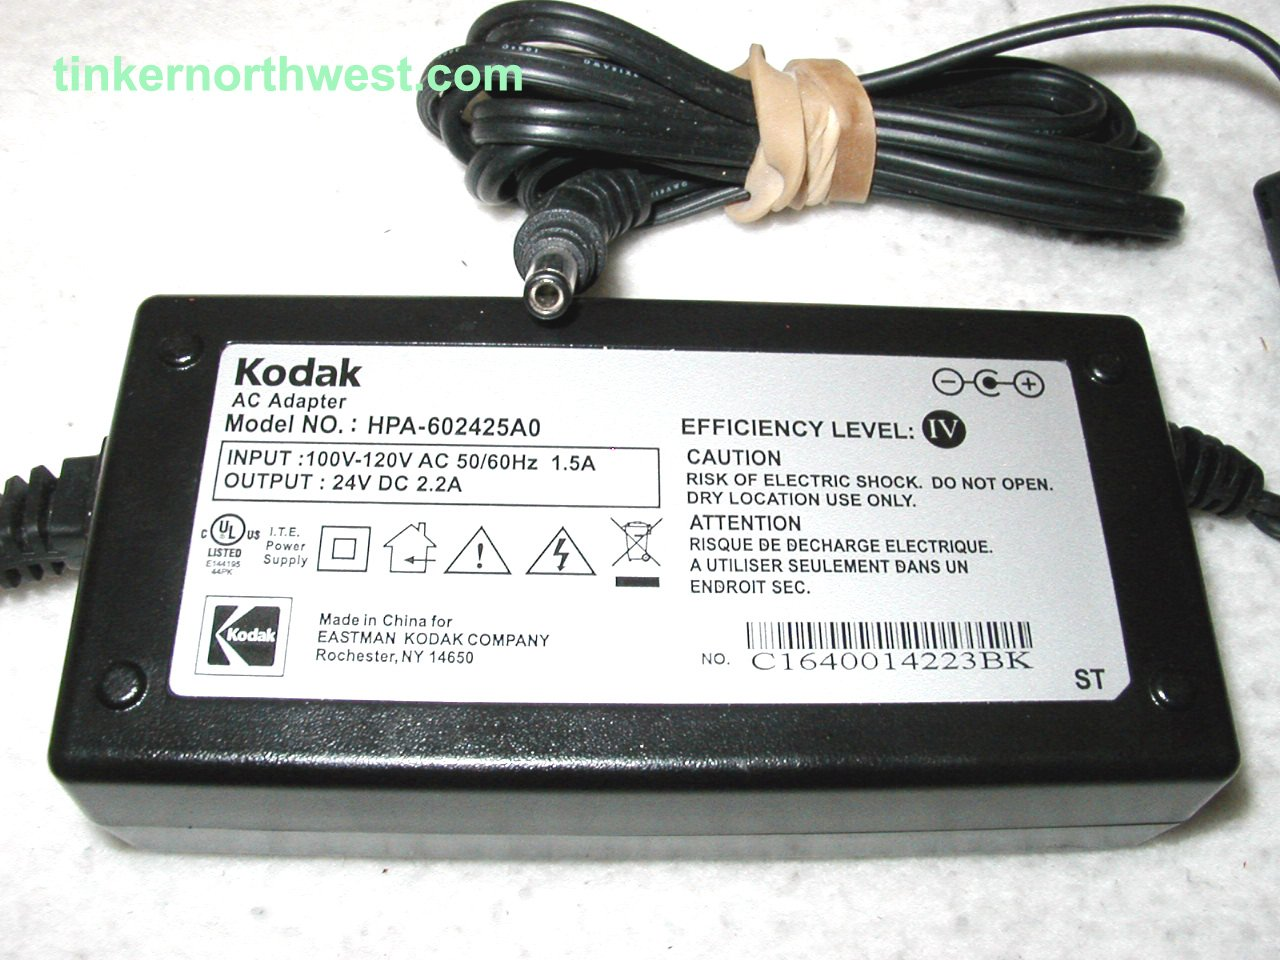 Kodak HPA-602425A0 AC Power Adapter 24VDC 2.2A Easyshare